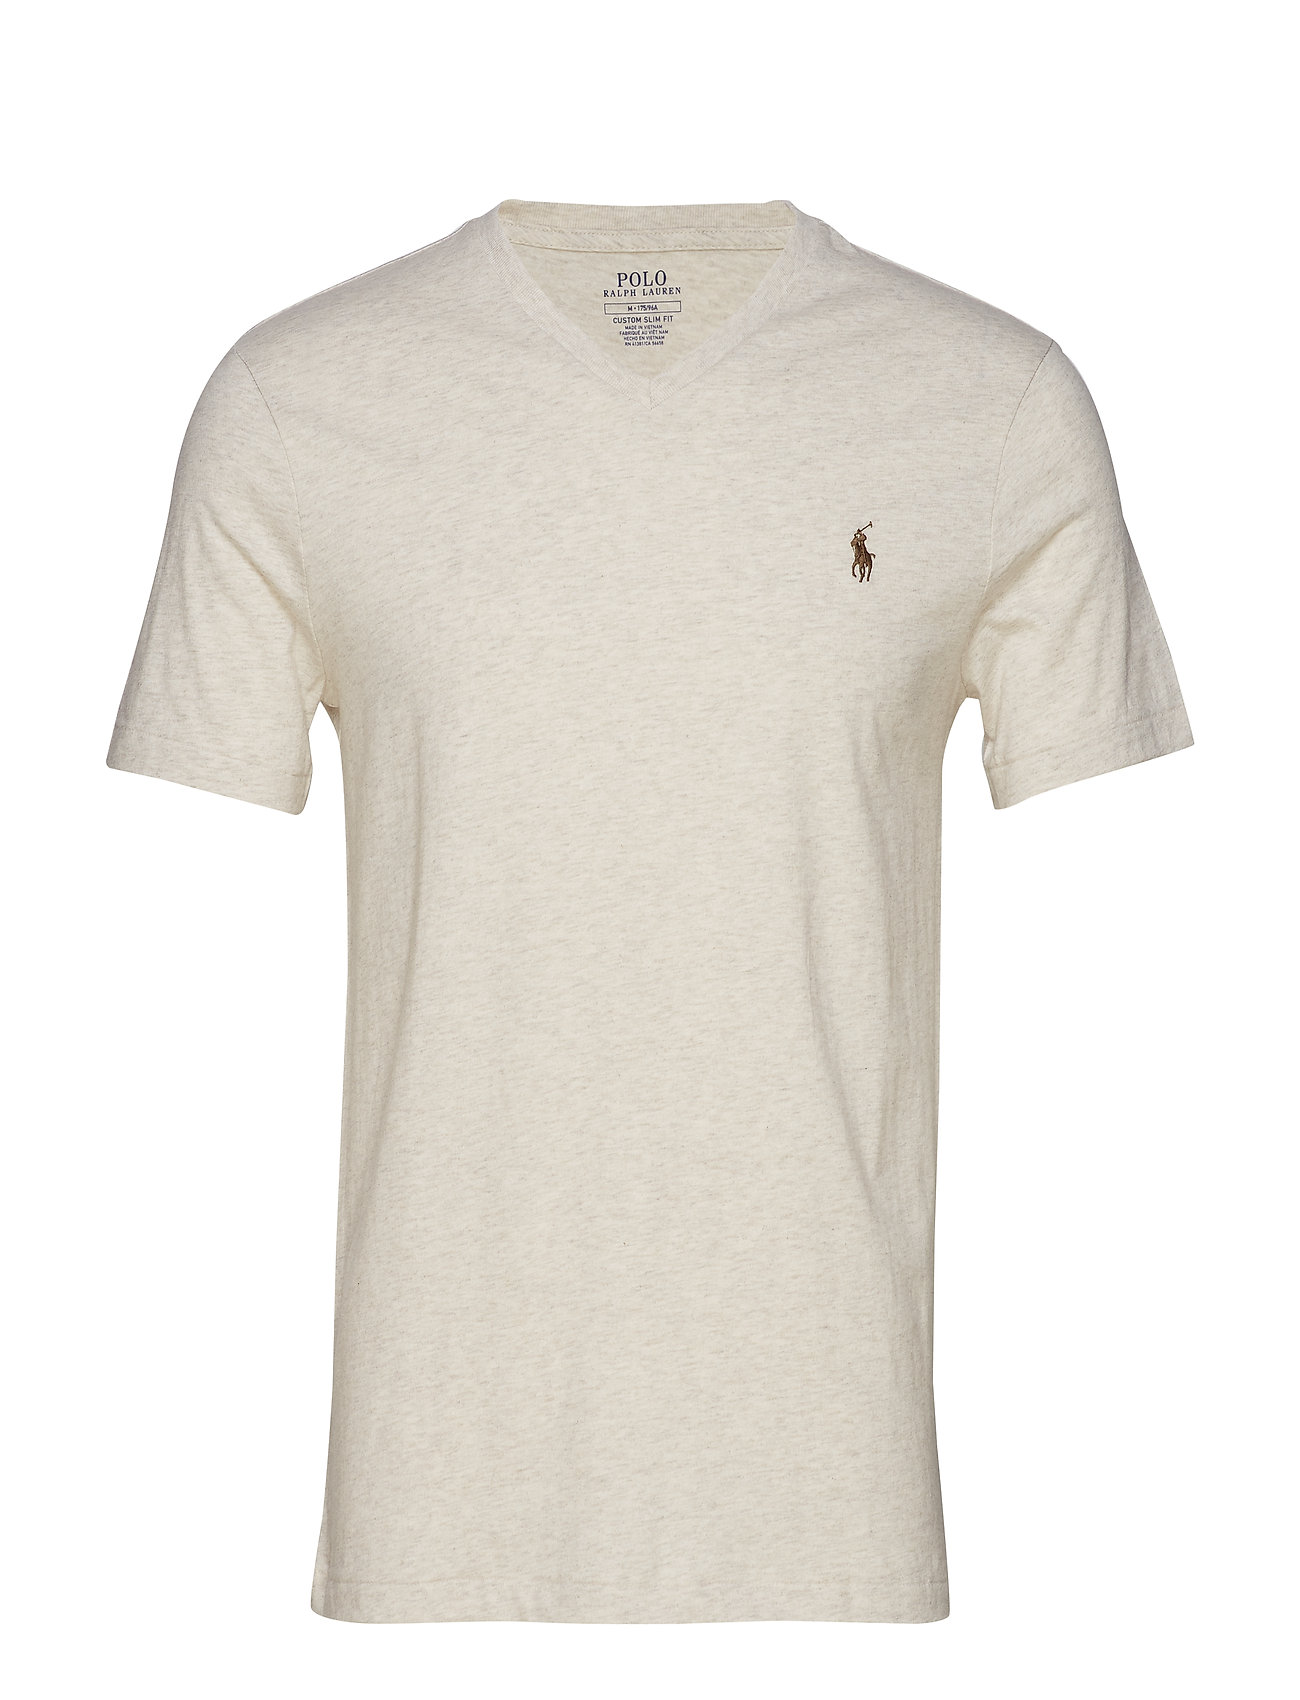 Polo Ralph Lauren Custom Slim Cotton T-Shirt